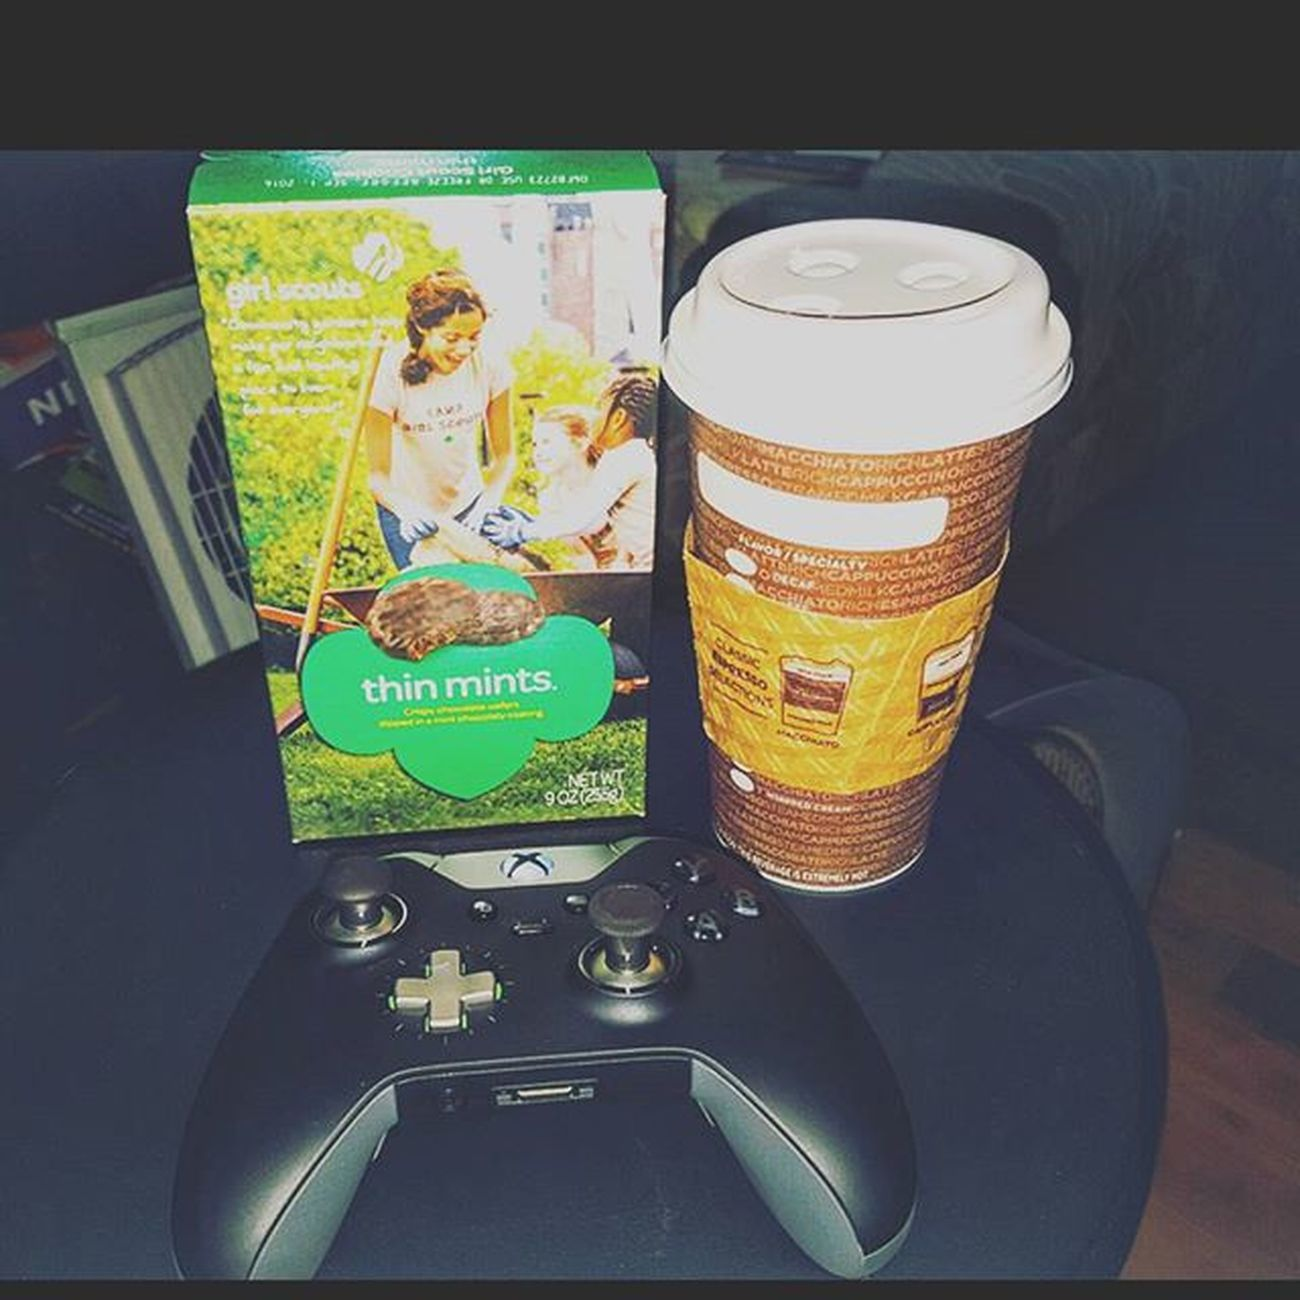 My kind of weekend...... 😎 XboxOne CallOfDuty Capturetheflag Coffee Macchiato Thinmints Girlscoutcookies Xboxelitecontroller Videogames Dunkindonuts Cookies